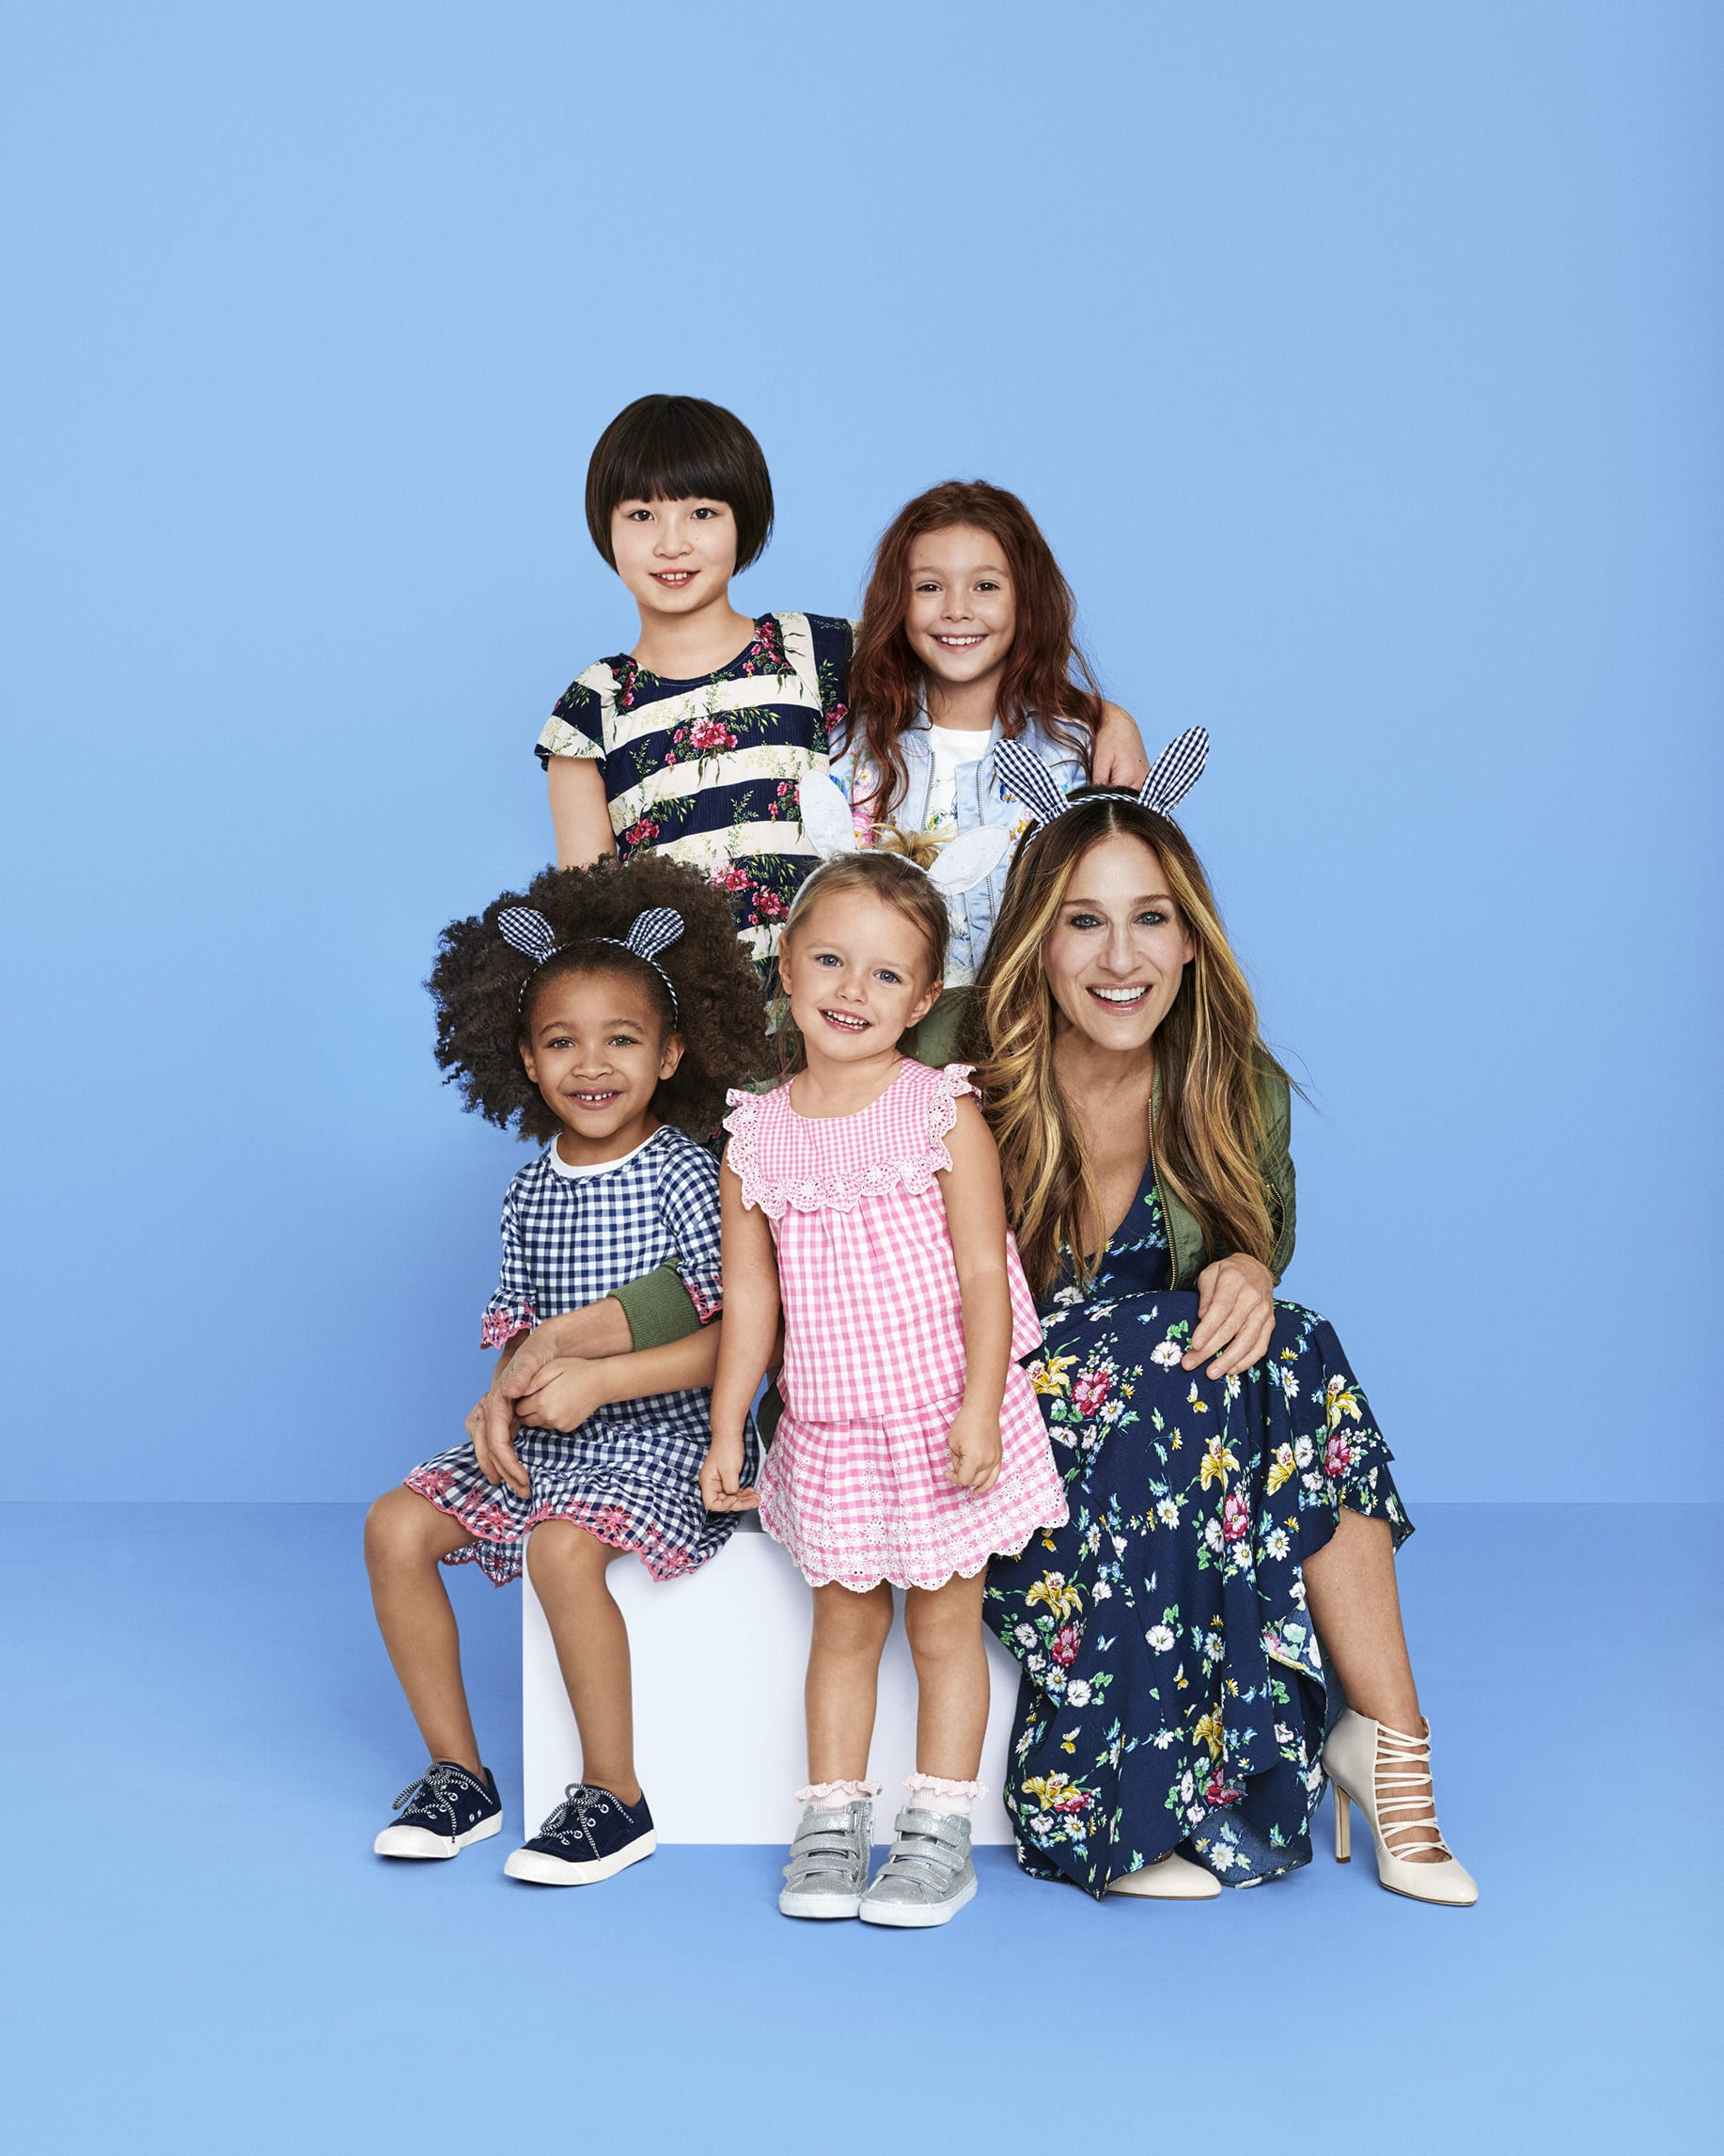 Sarah Jessica Parker Gap Kids Shirt Be Friendly In Use Kids' Clothing, Shoes & Accs Clothing, Shoes & Accessories